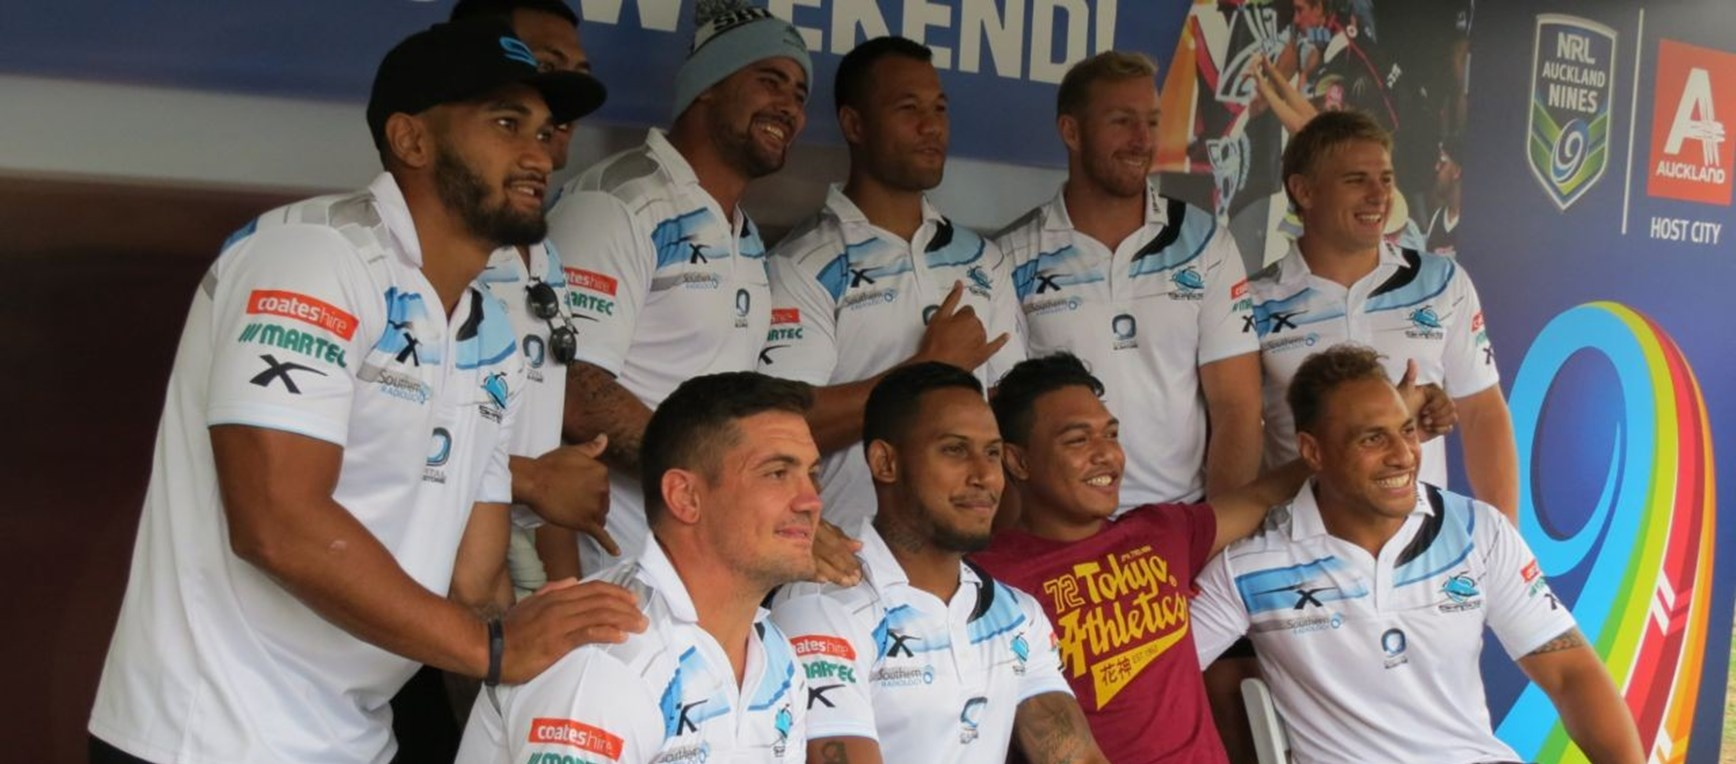 FAN DAY | Shots from Aotea Square